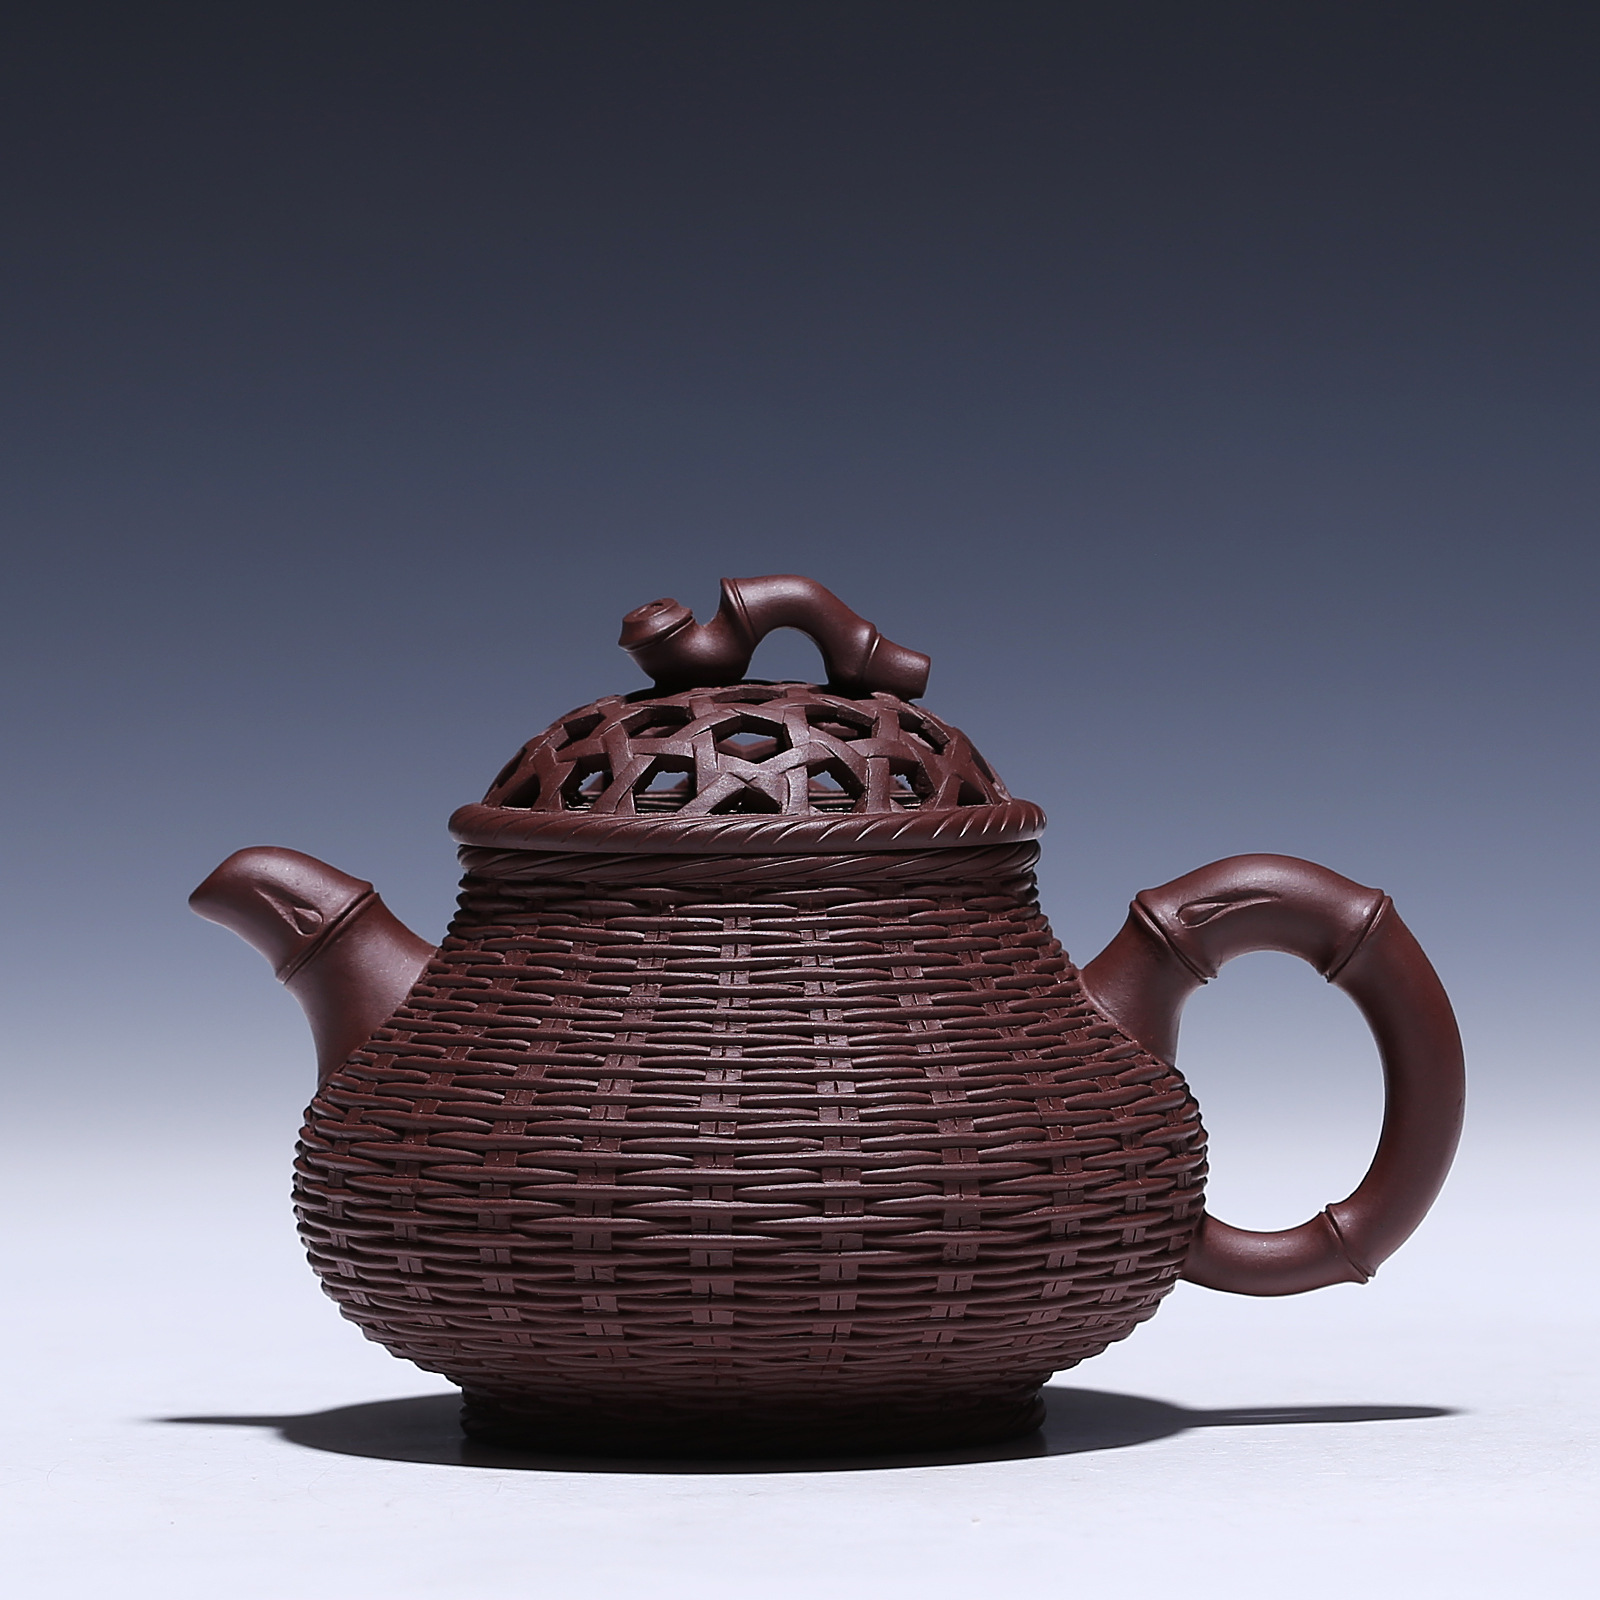 Bamboo Pot 300cc Authentic Yixing Teapot Genuine HandBamboo Pot 300cc Authentic Yixing Teapot Genuine Hand